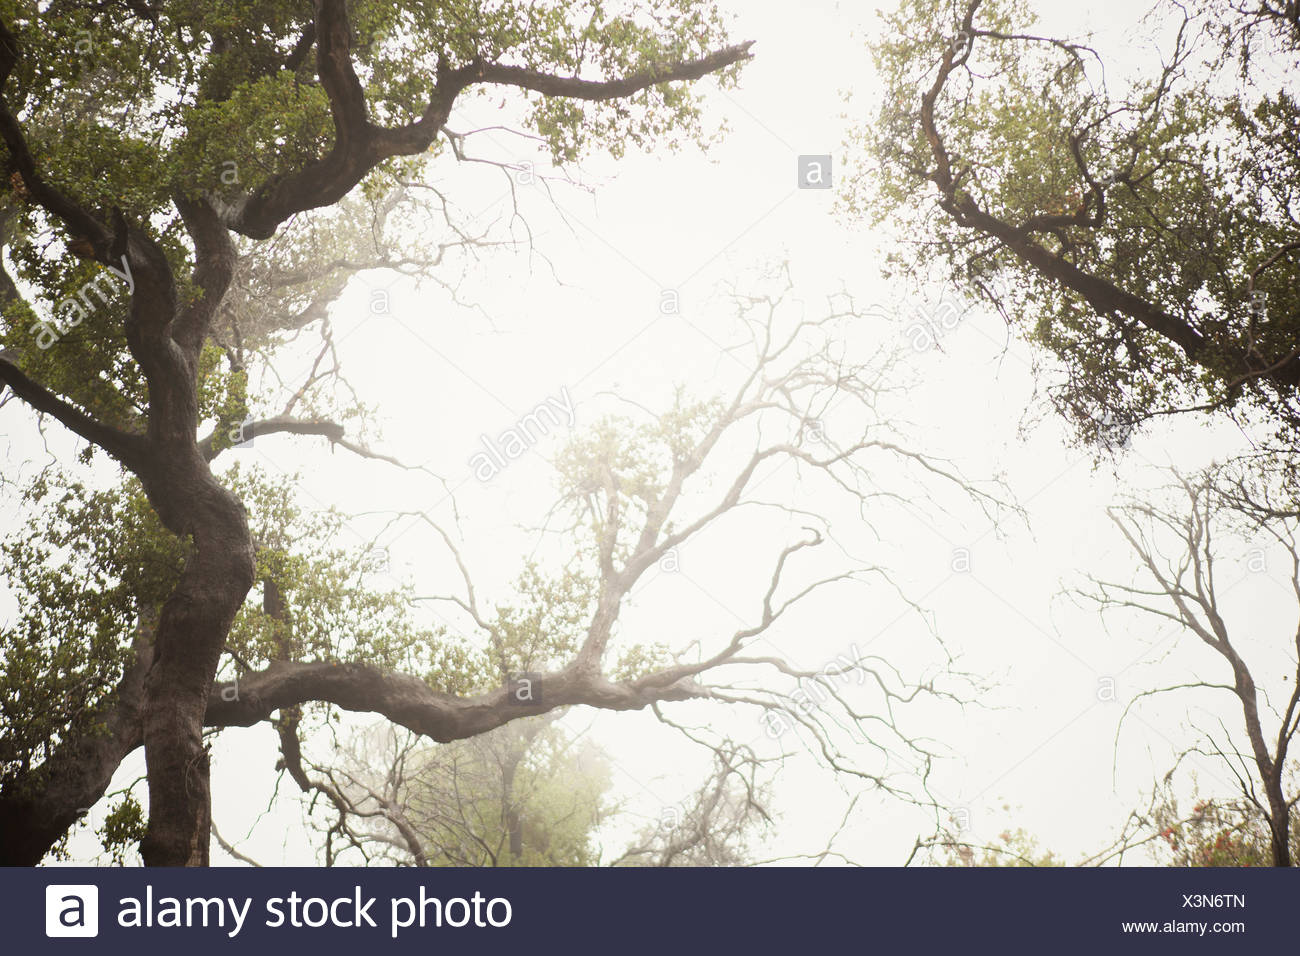 Fog rolling over tree tops in forest - Stock Image